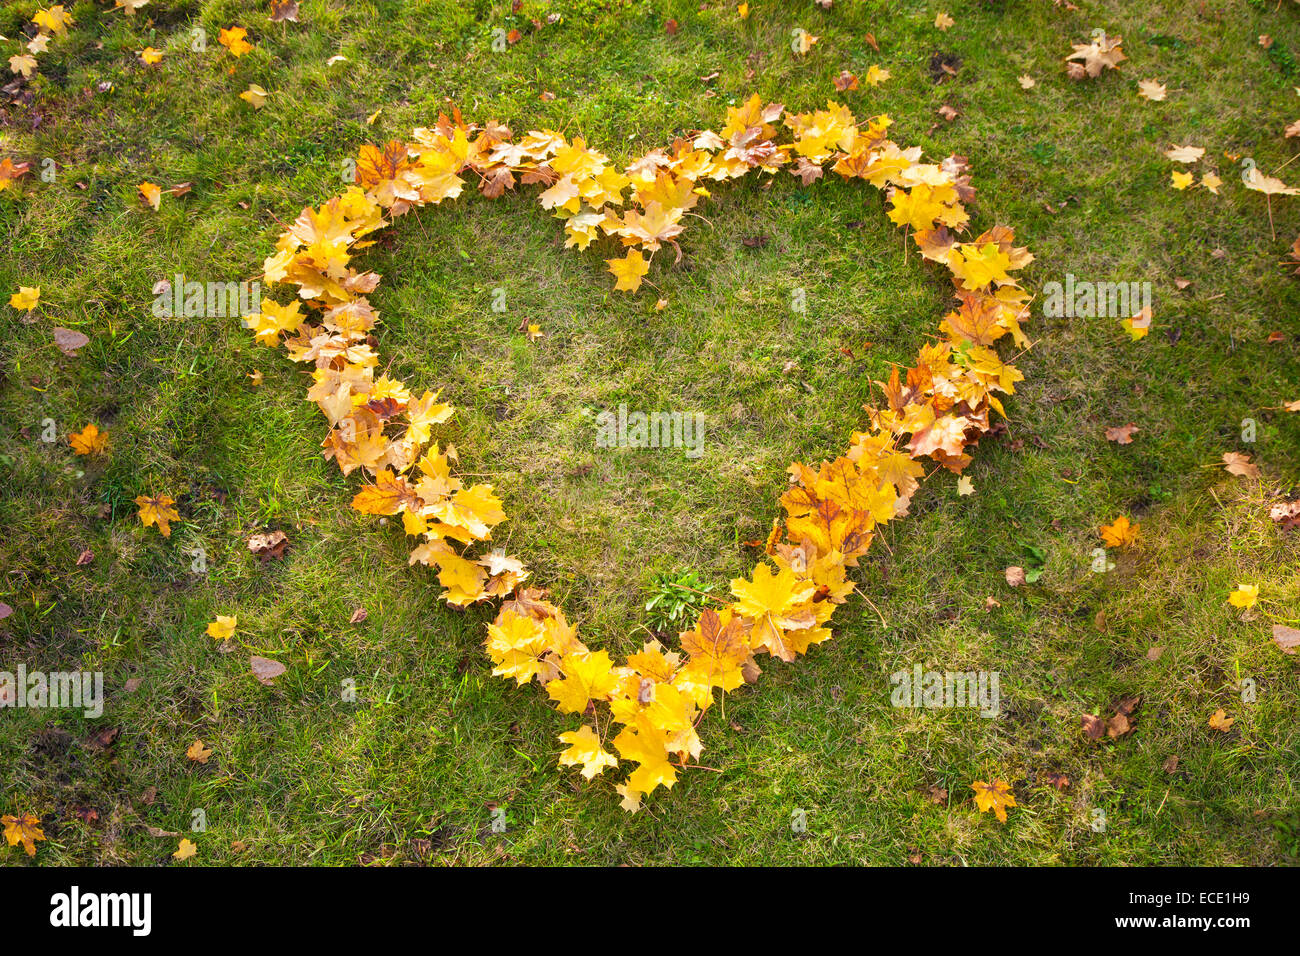 Yellow autumn leaves heart shape grass from above - Stock Image